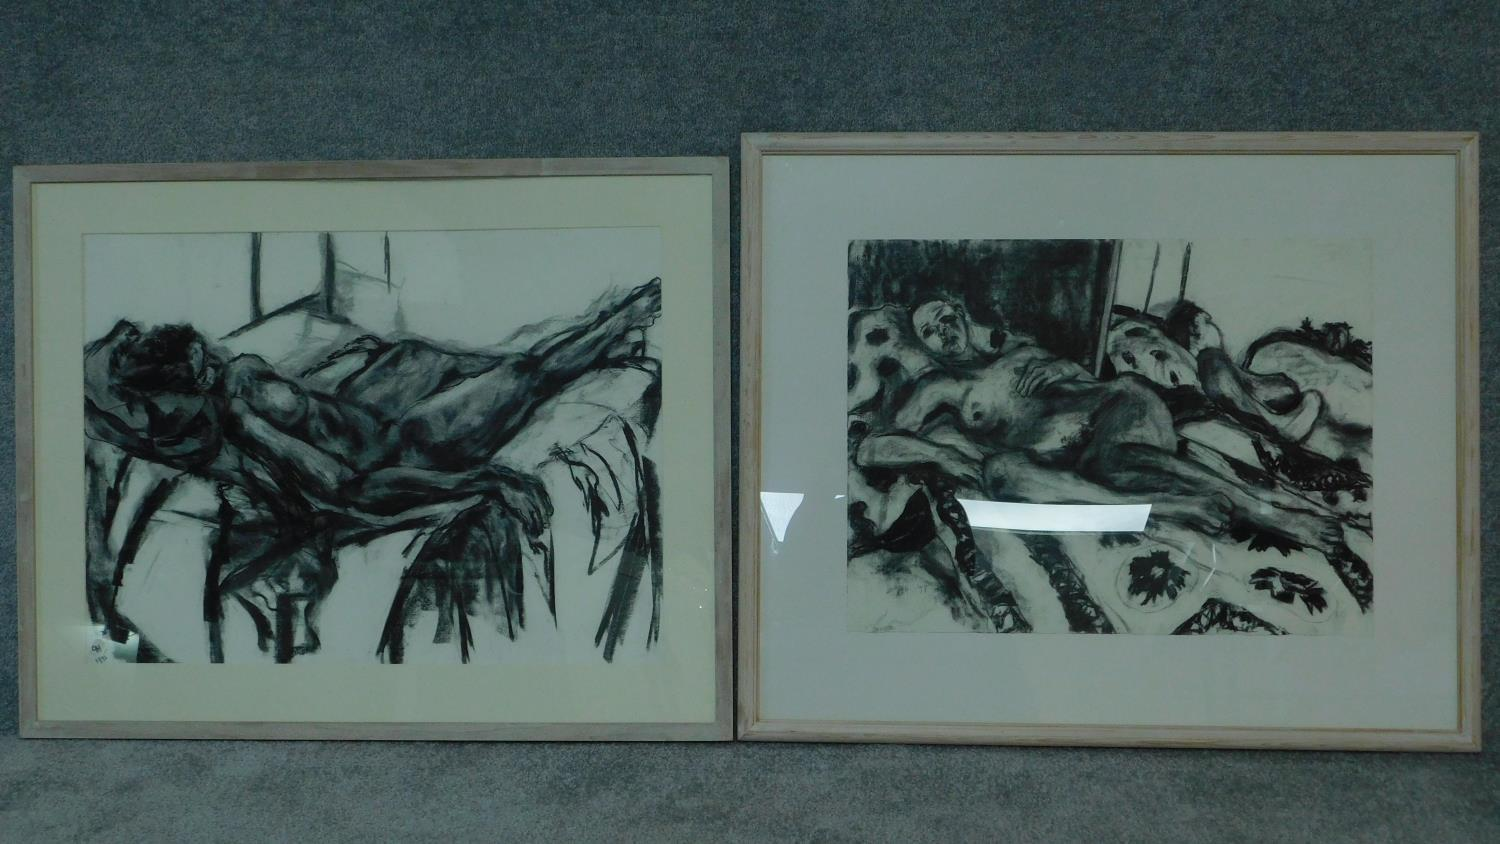 Two framed and glazed charcoal nude studies, monogrammed G H - 78x92 (largest)